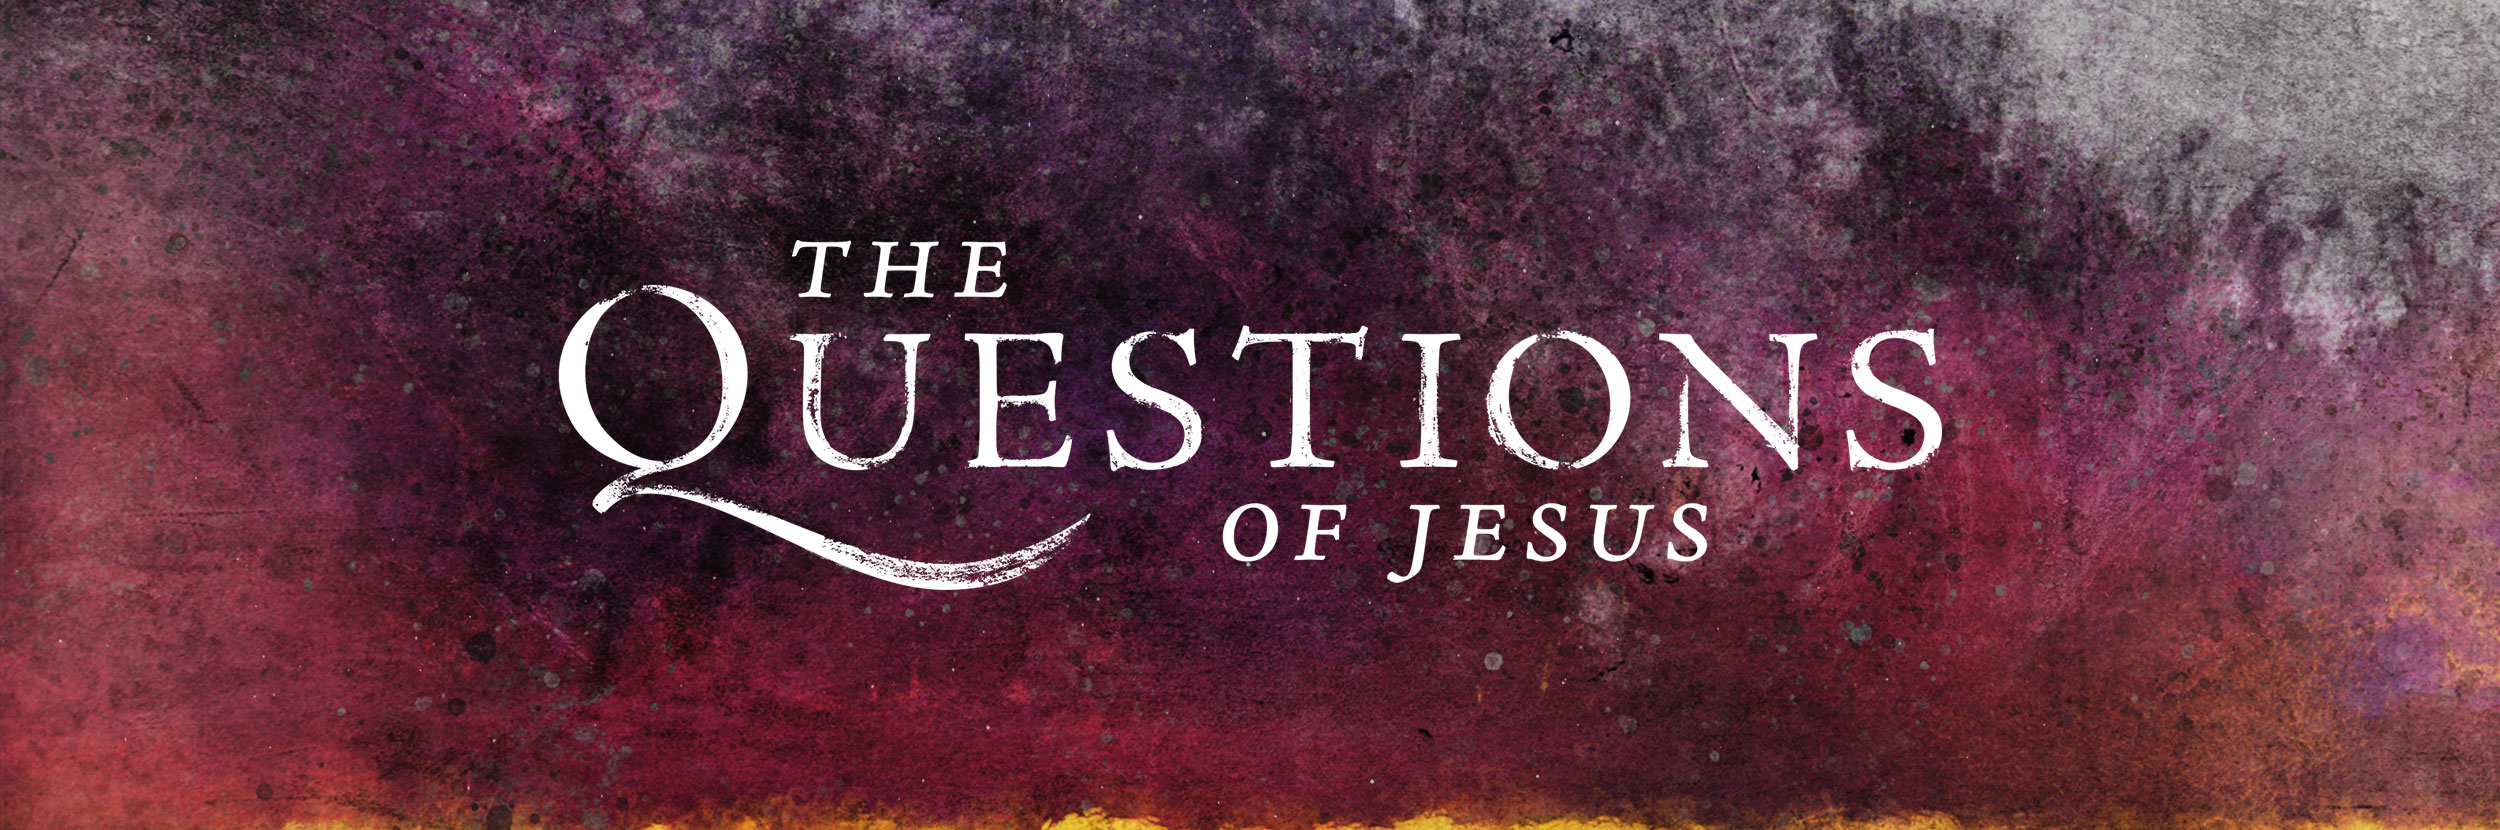 the-questions-of-jesus-lent-banner-2500x830.jpg